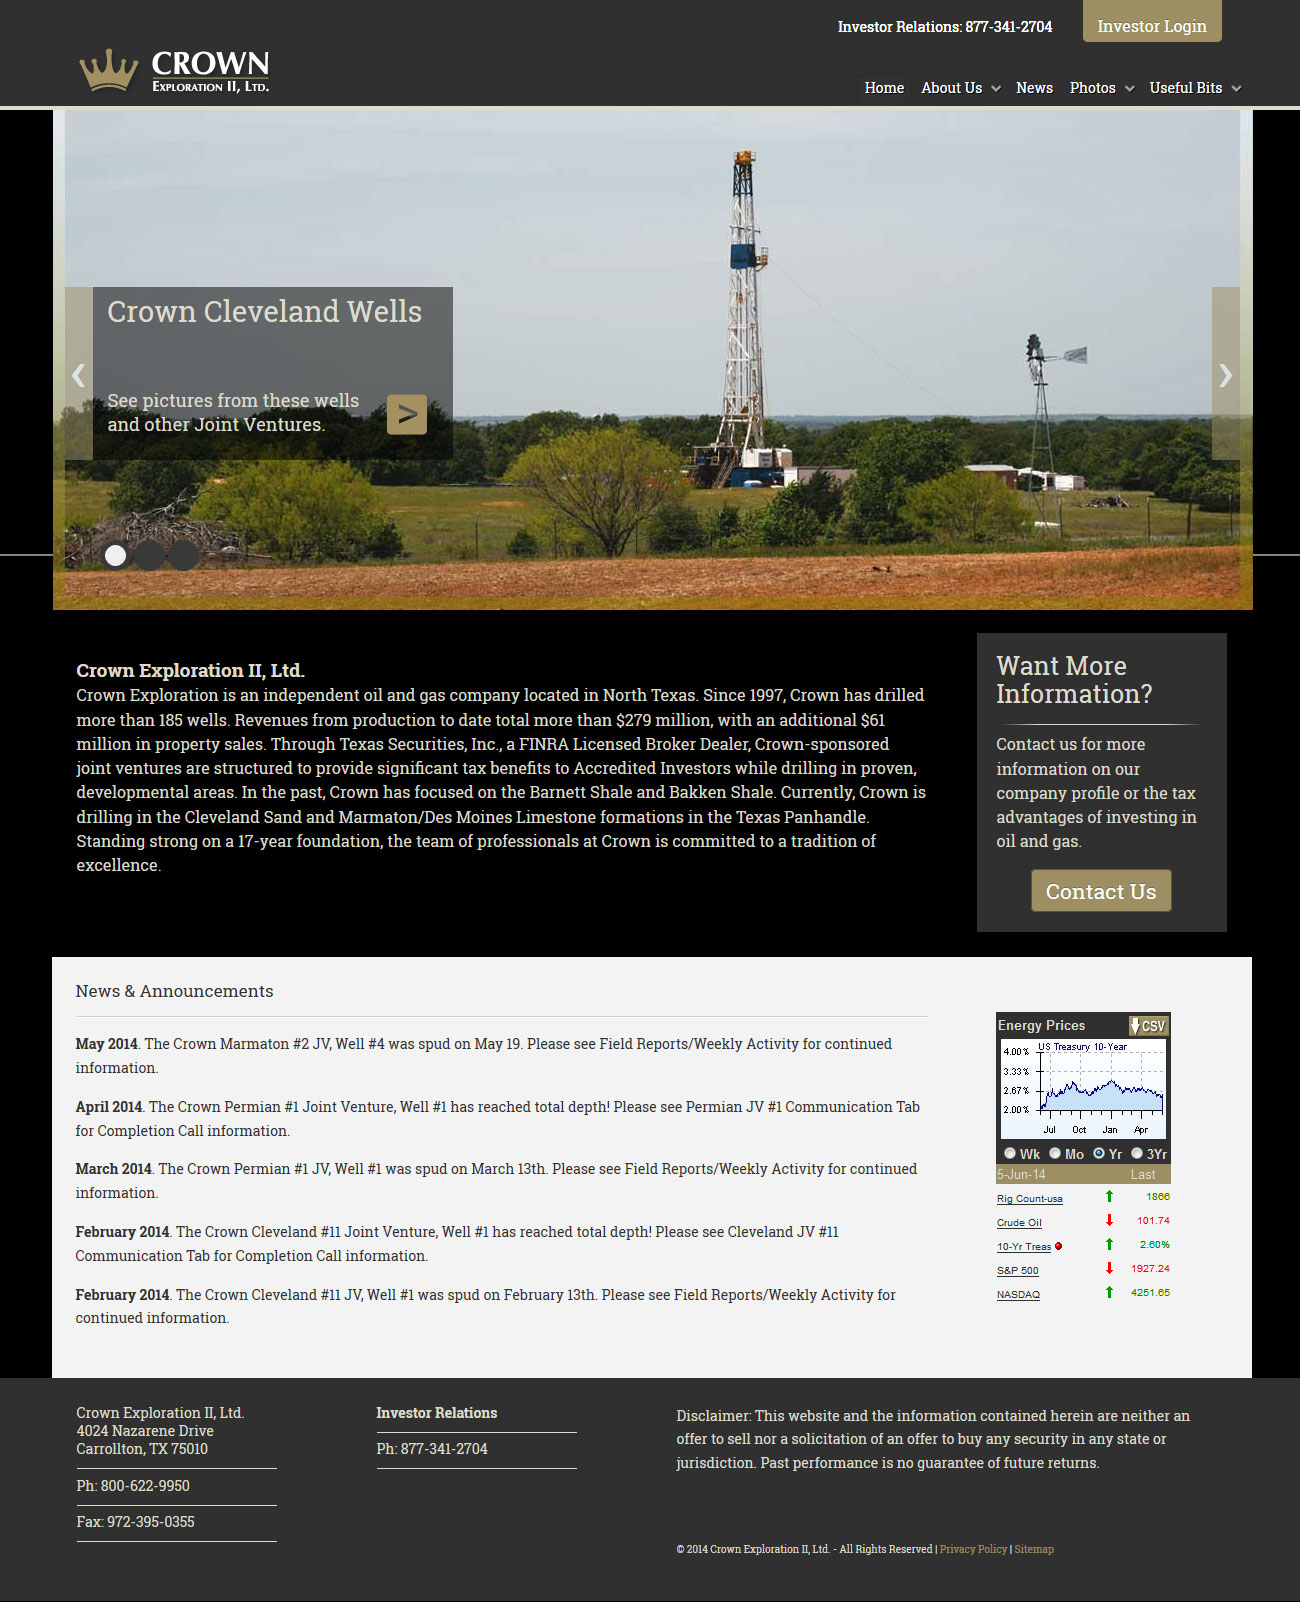 We developed Crown Exploration's new website based on Black Lab Creative's design.